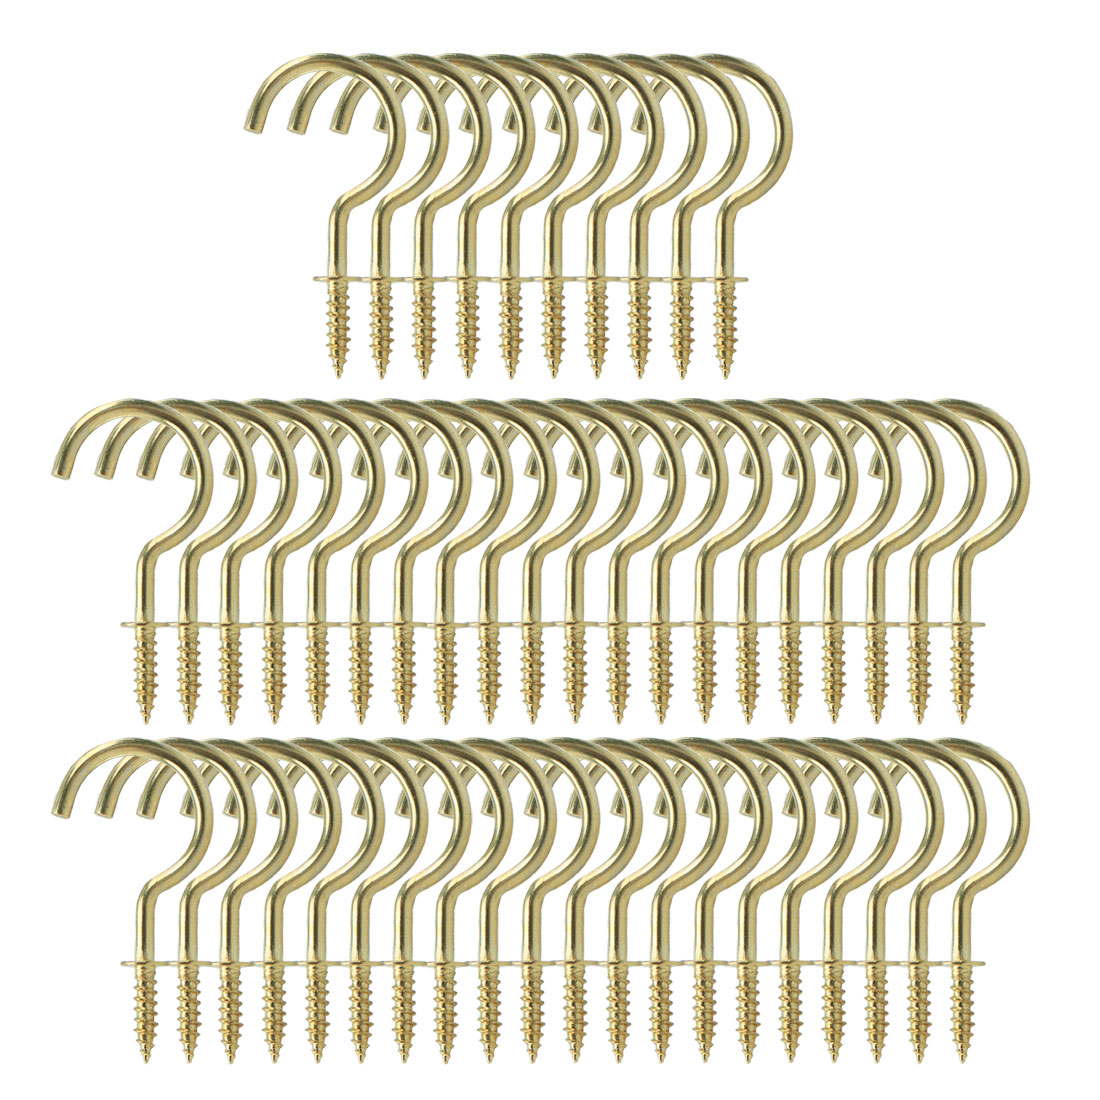 50pcs Cup Ceiling Hooks 1-1/4 Inch Copper Plating Screw Holder Gold Tone